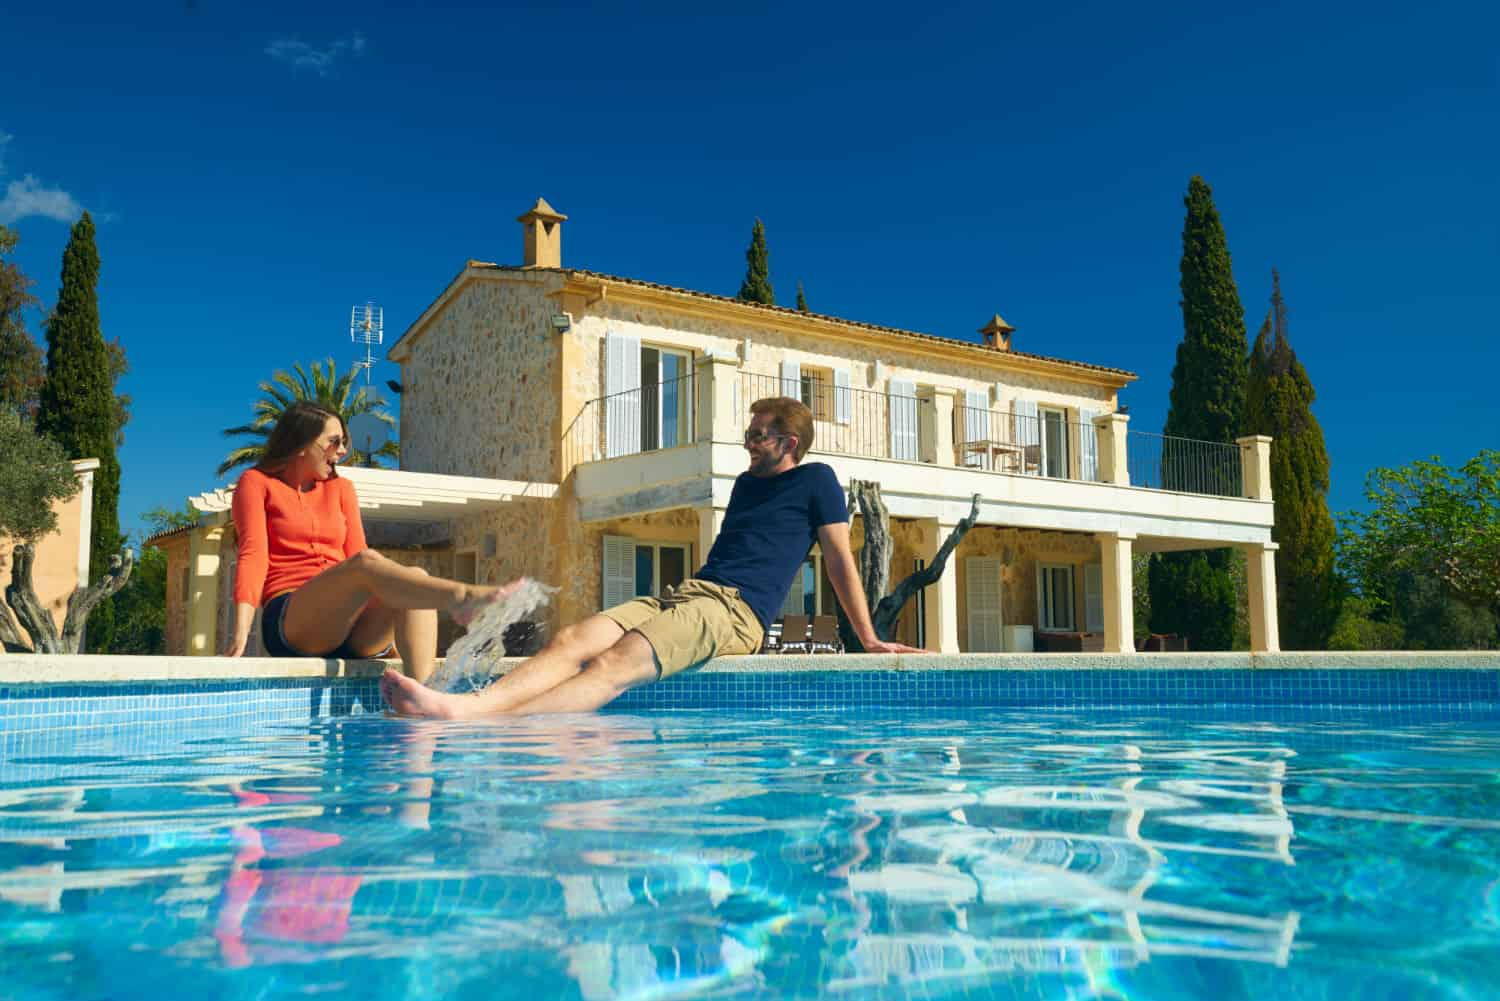 Why now is the perfect time to buy property in Spain despite Brexit